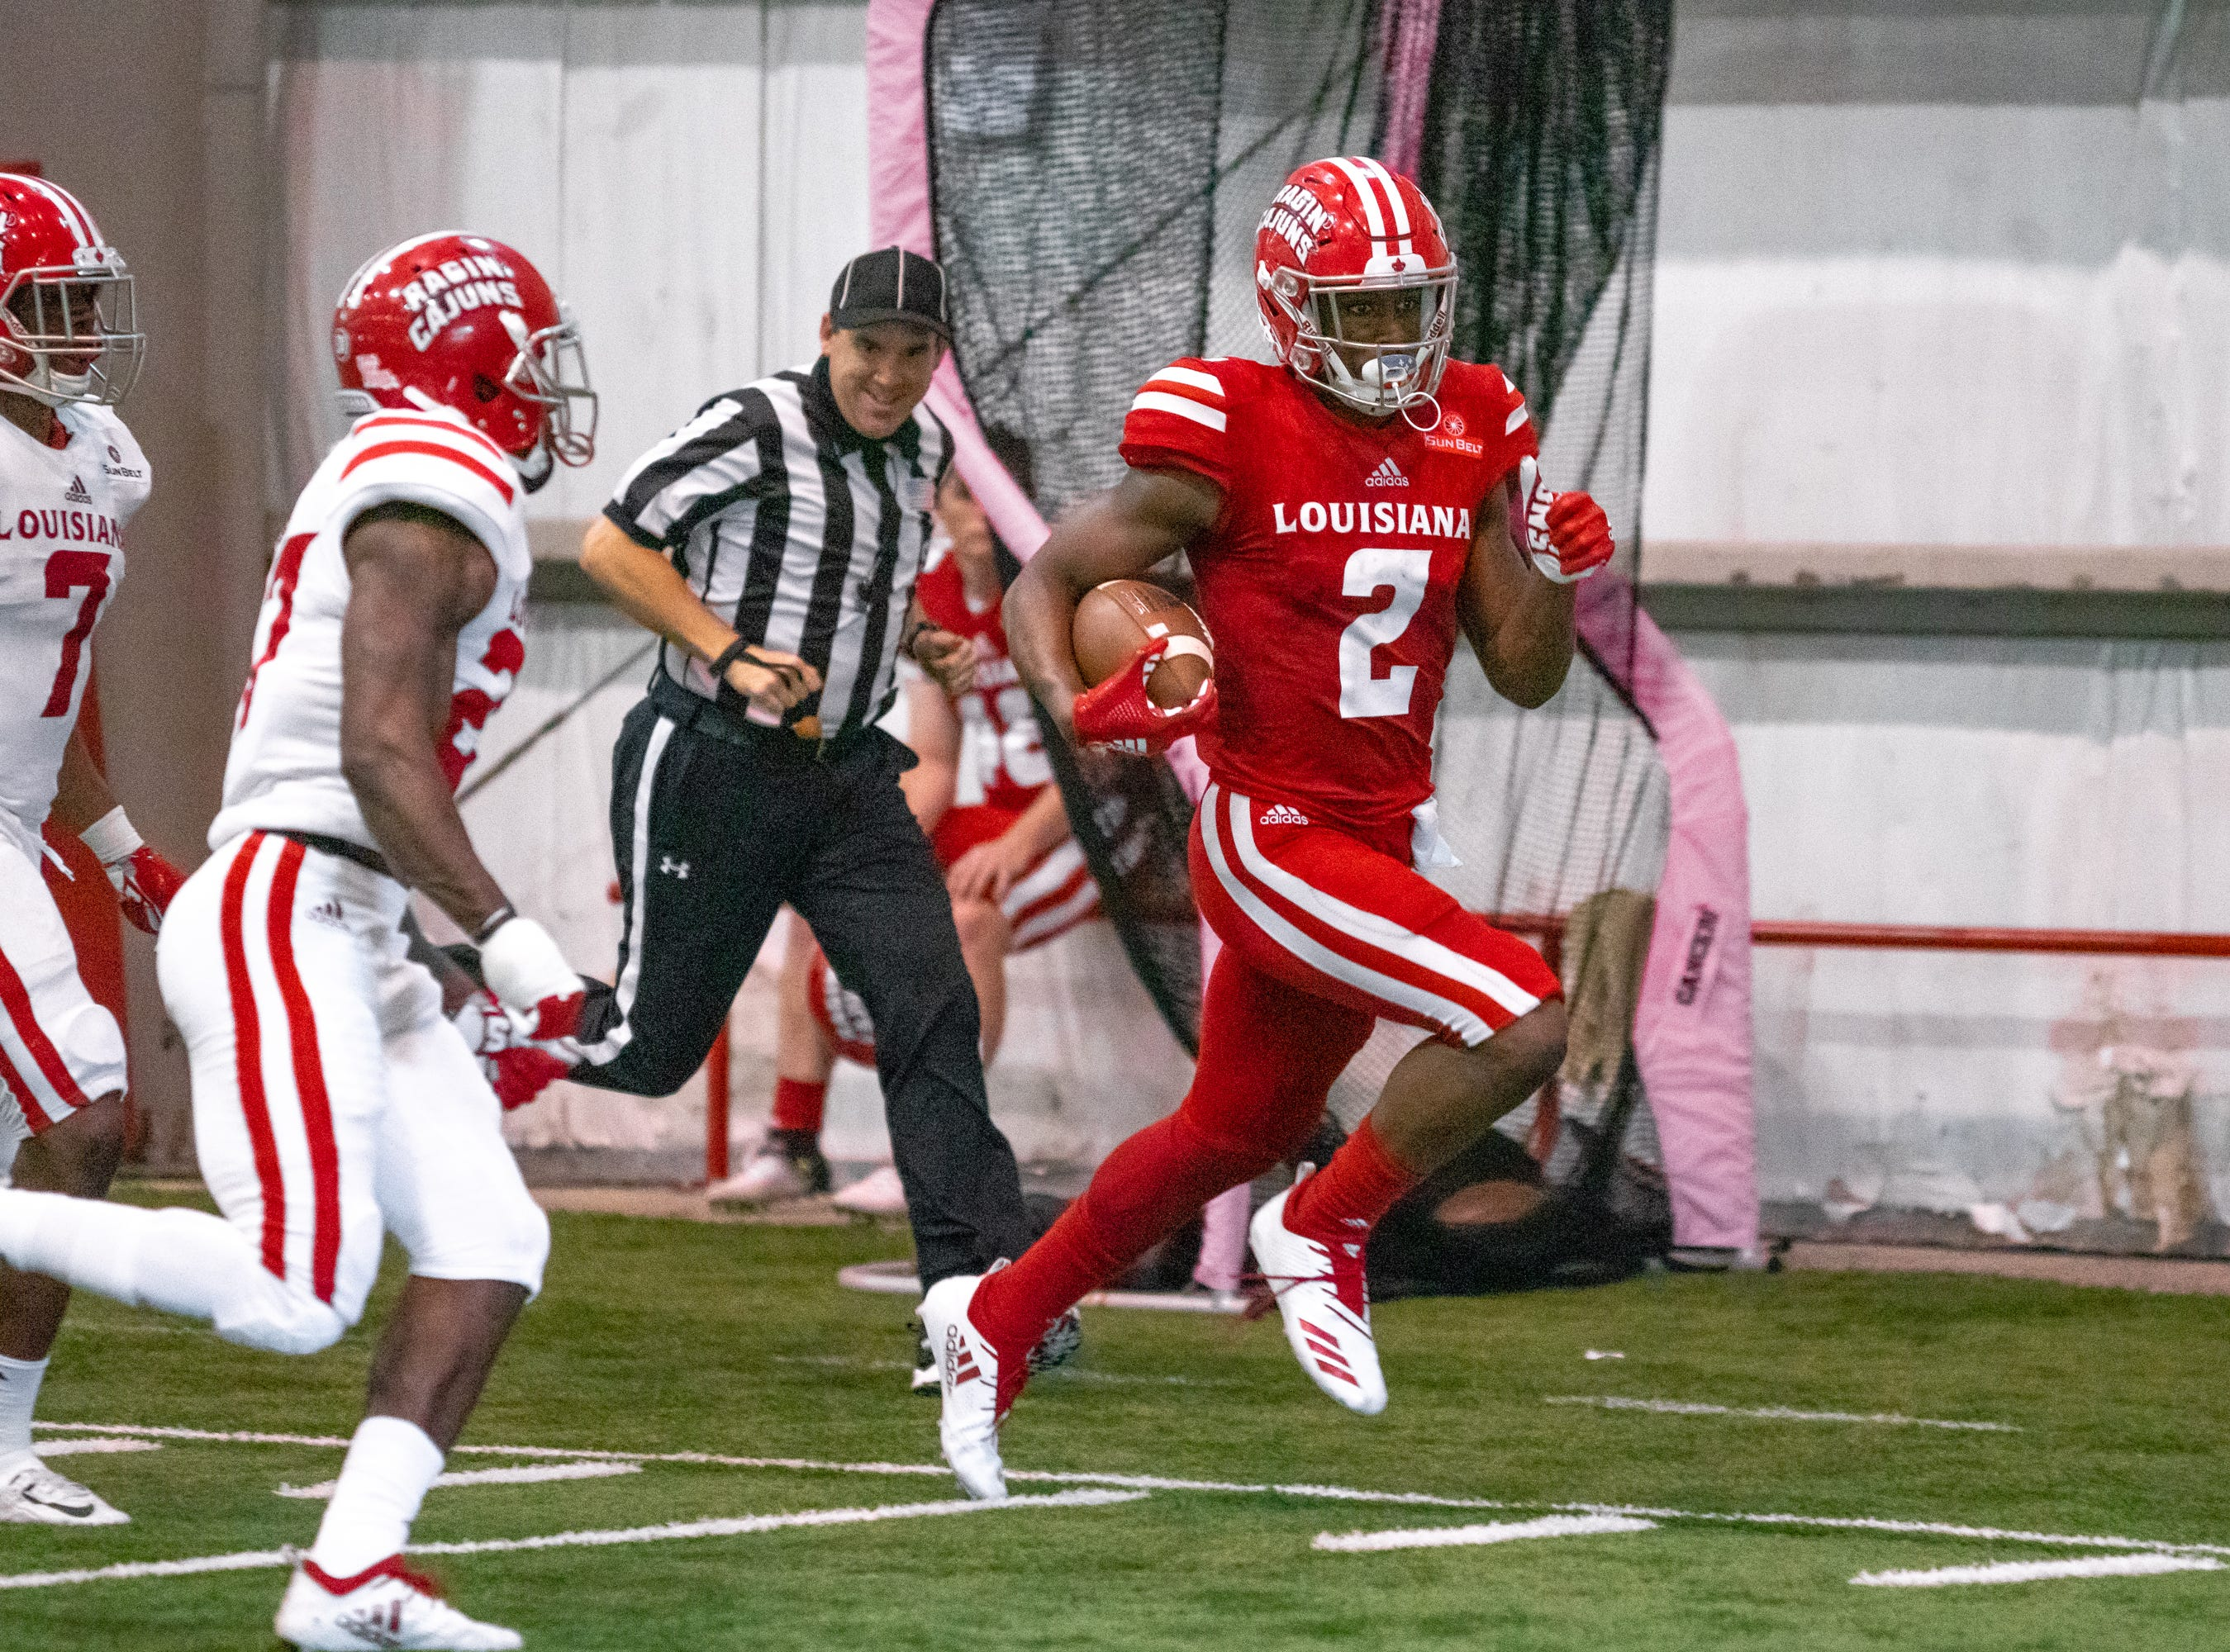 UL's Ja'Marcus Bradley runs the ball along the sidelines and towards the endzone as the Ragin' Cajuns football team plays their annual Spring football game against one another in the Leon Moncla trainig facility on April 13, 2019.